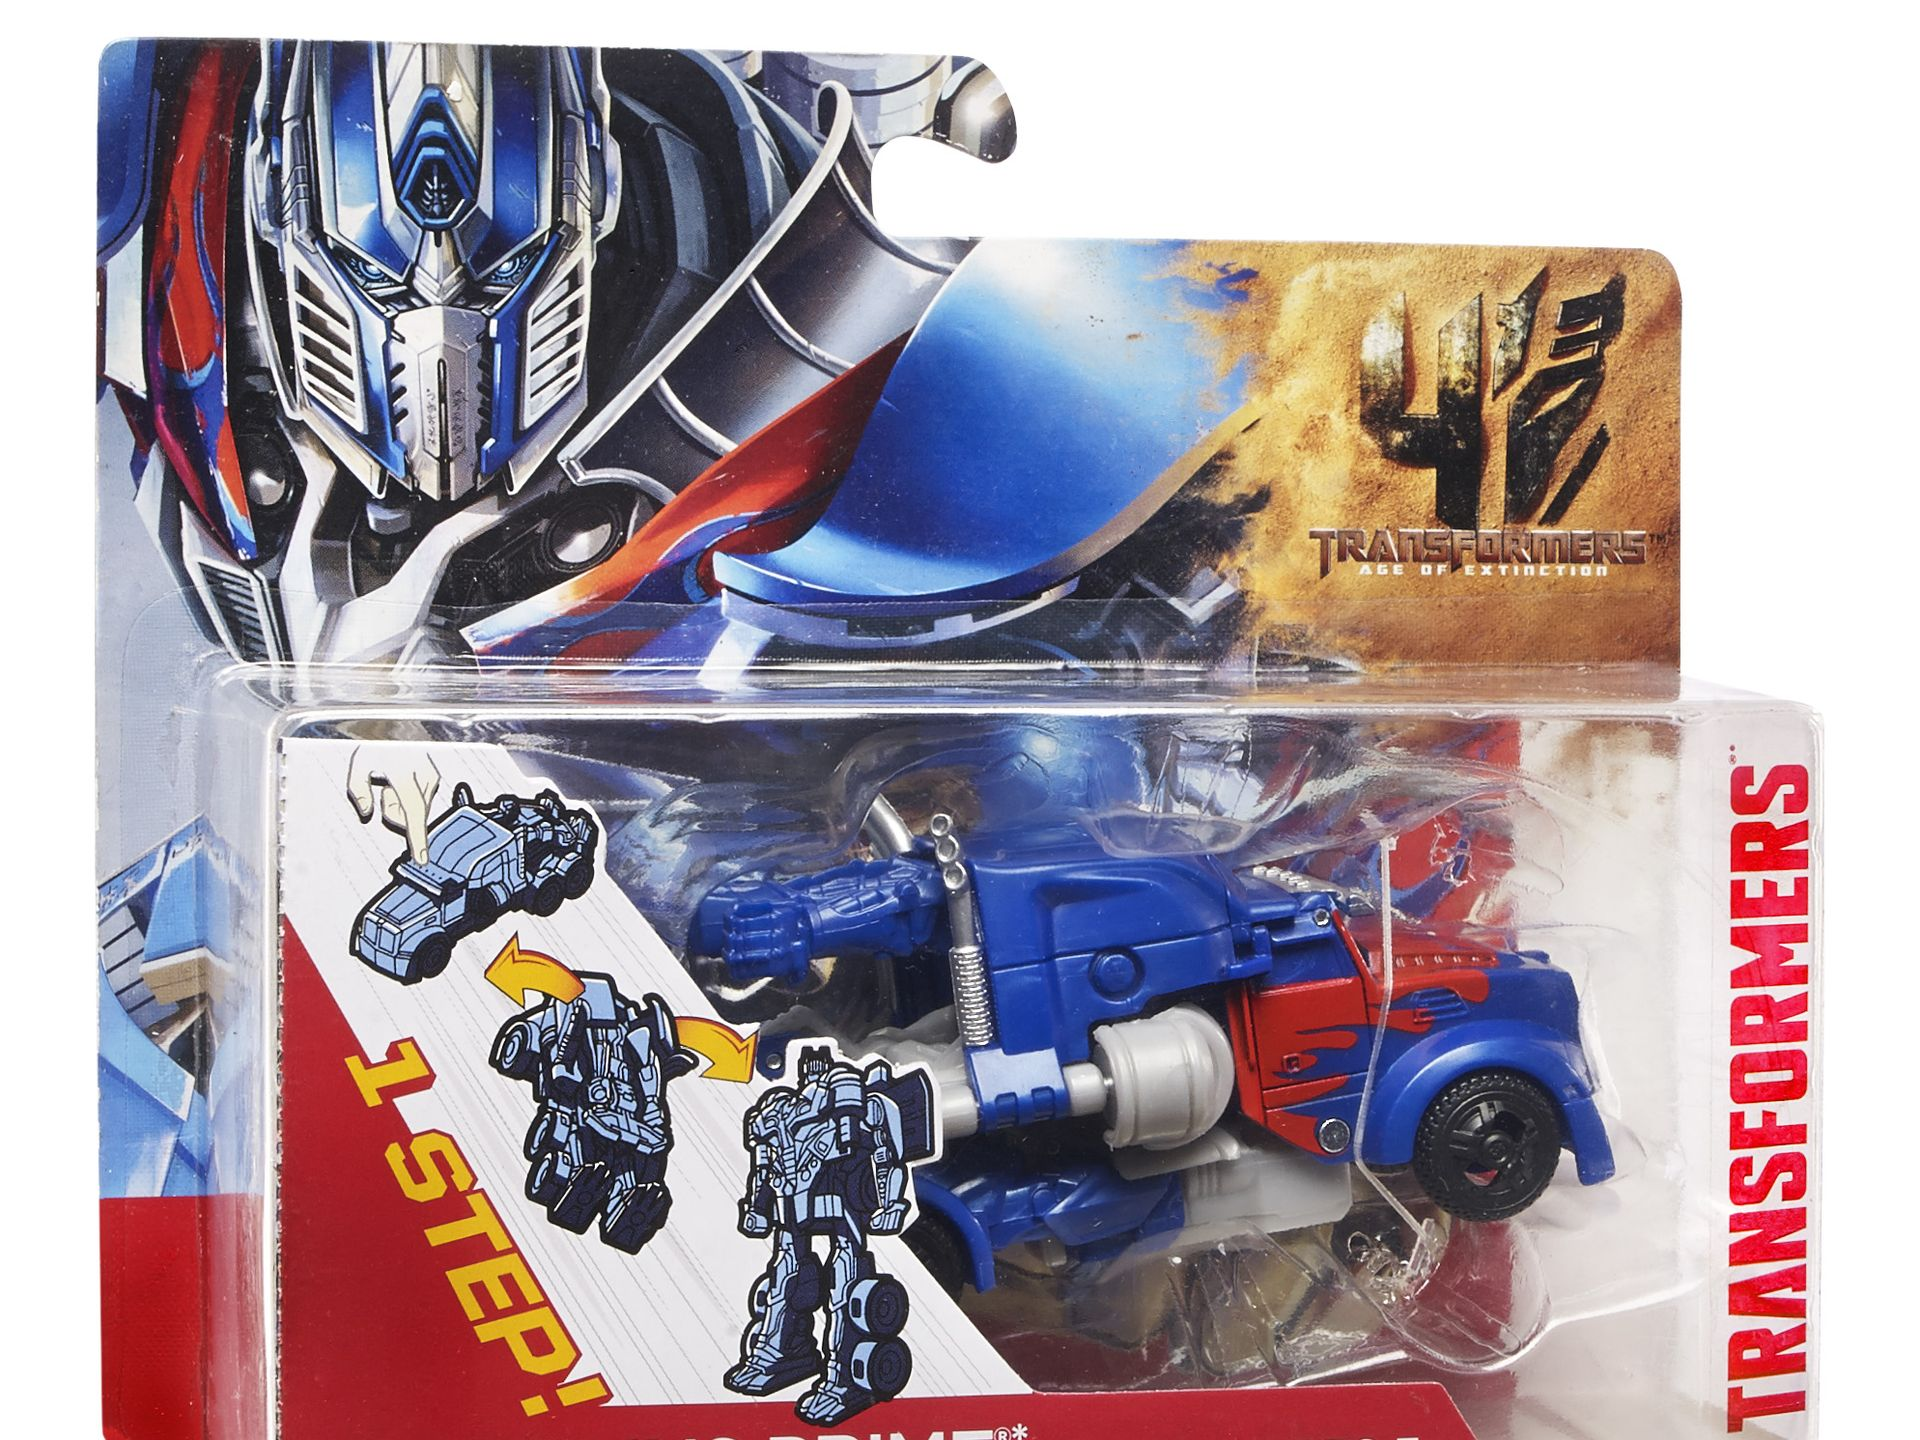 Optimus Prime Packaging for Transformers 4 Optimus Prime Packaging for Transformers 4